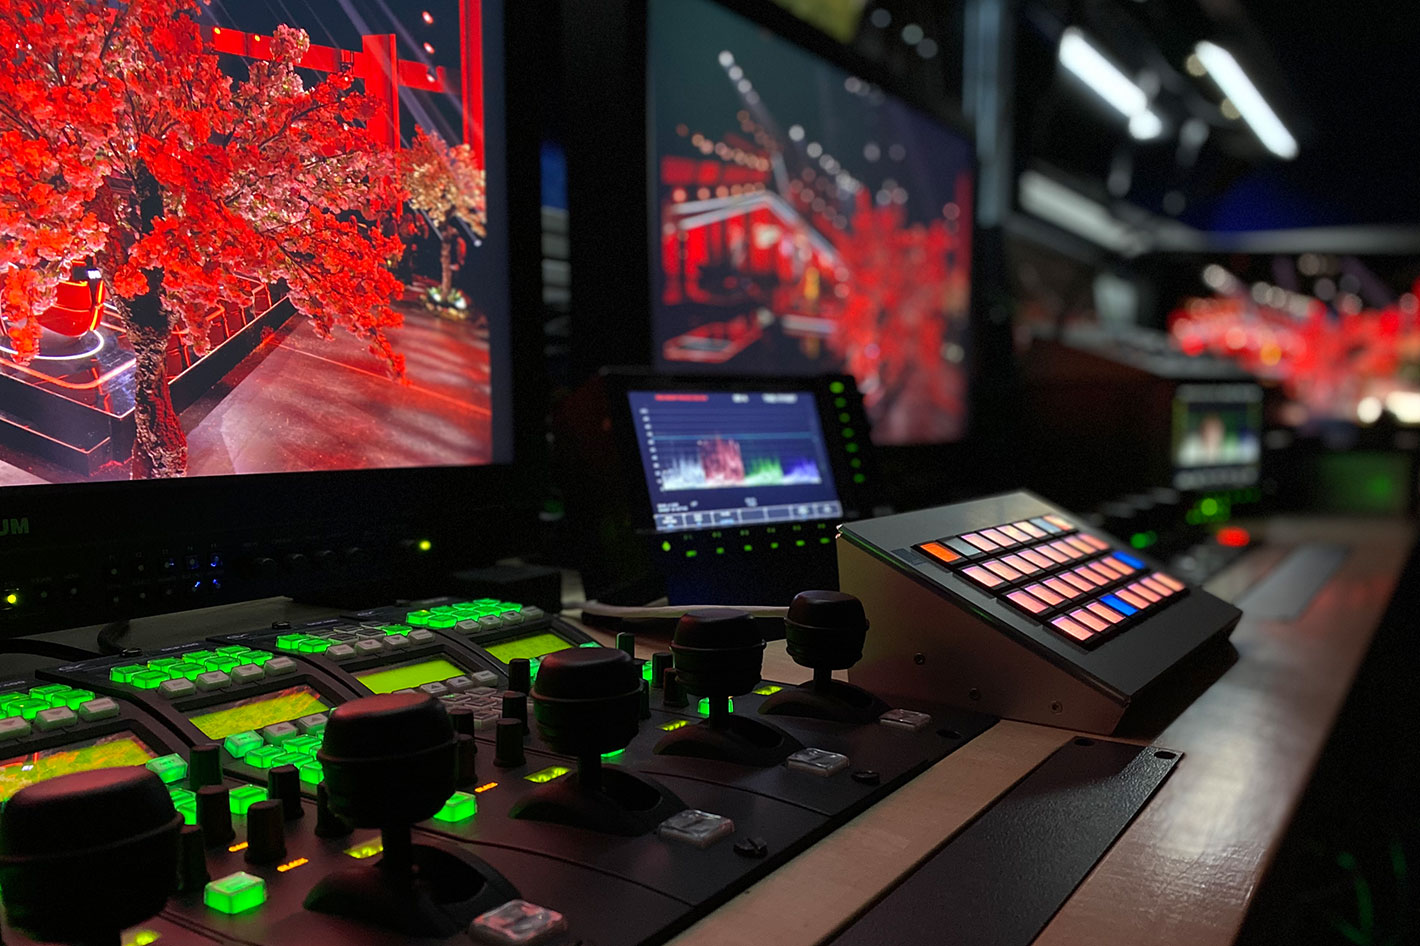 AJA FS-HDR helps drive HDR production for Studio Berlin